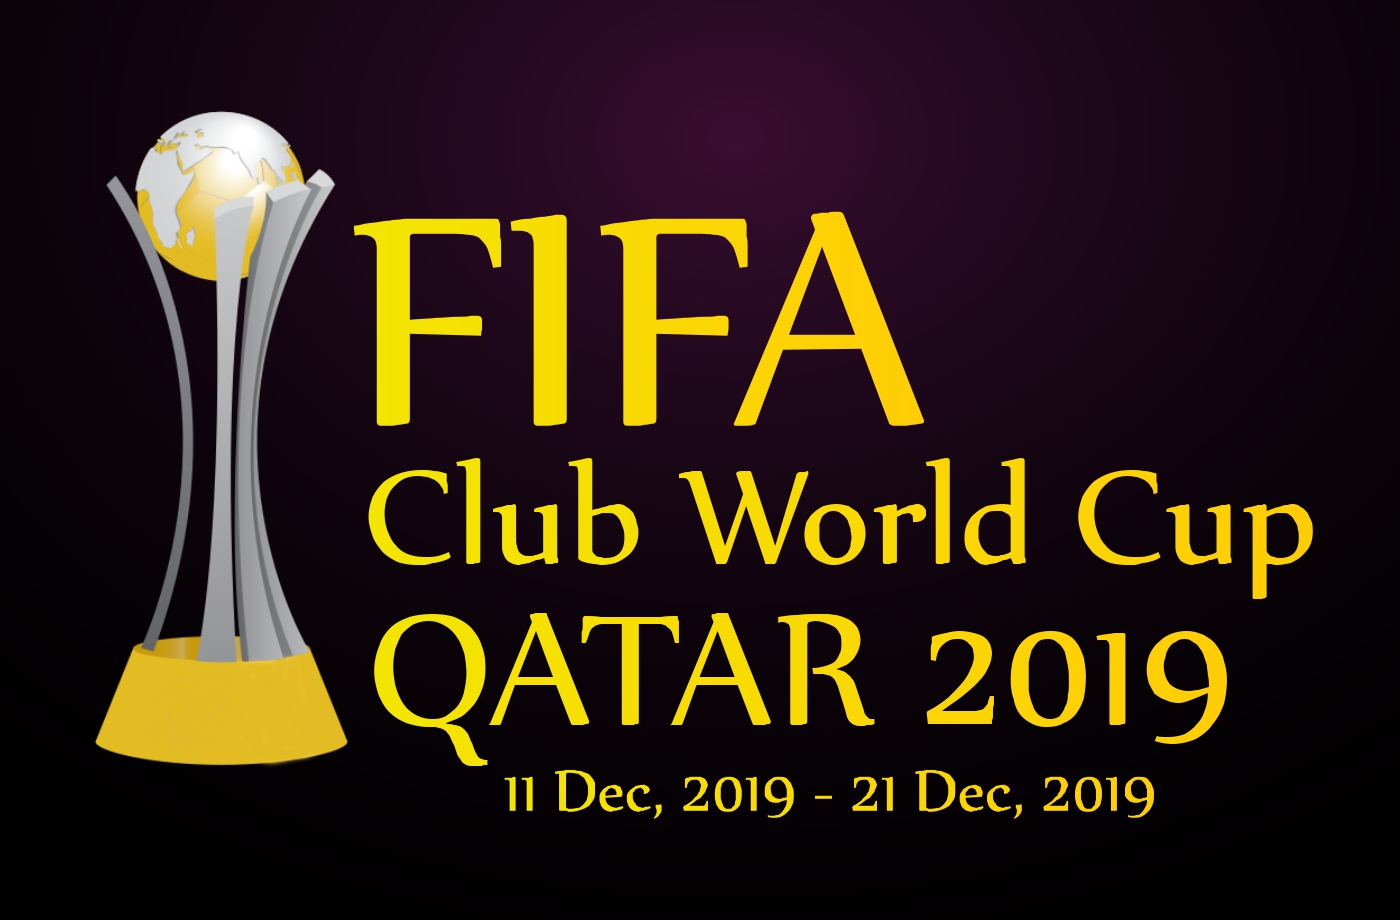 FIFA Club World Cup Qatar 2019